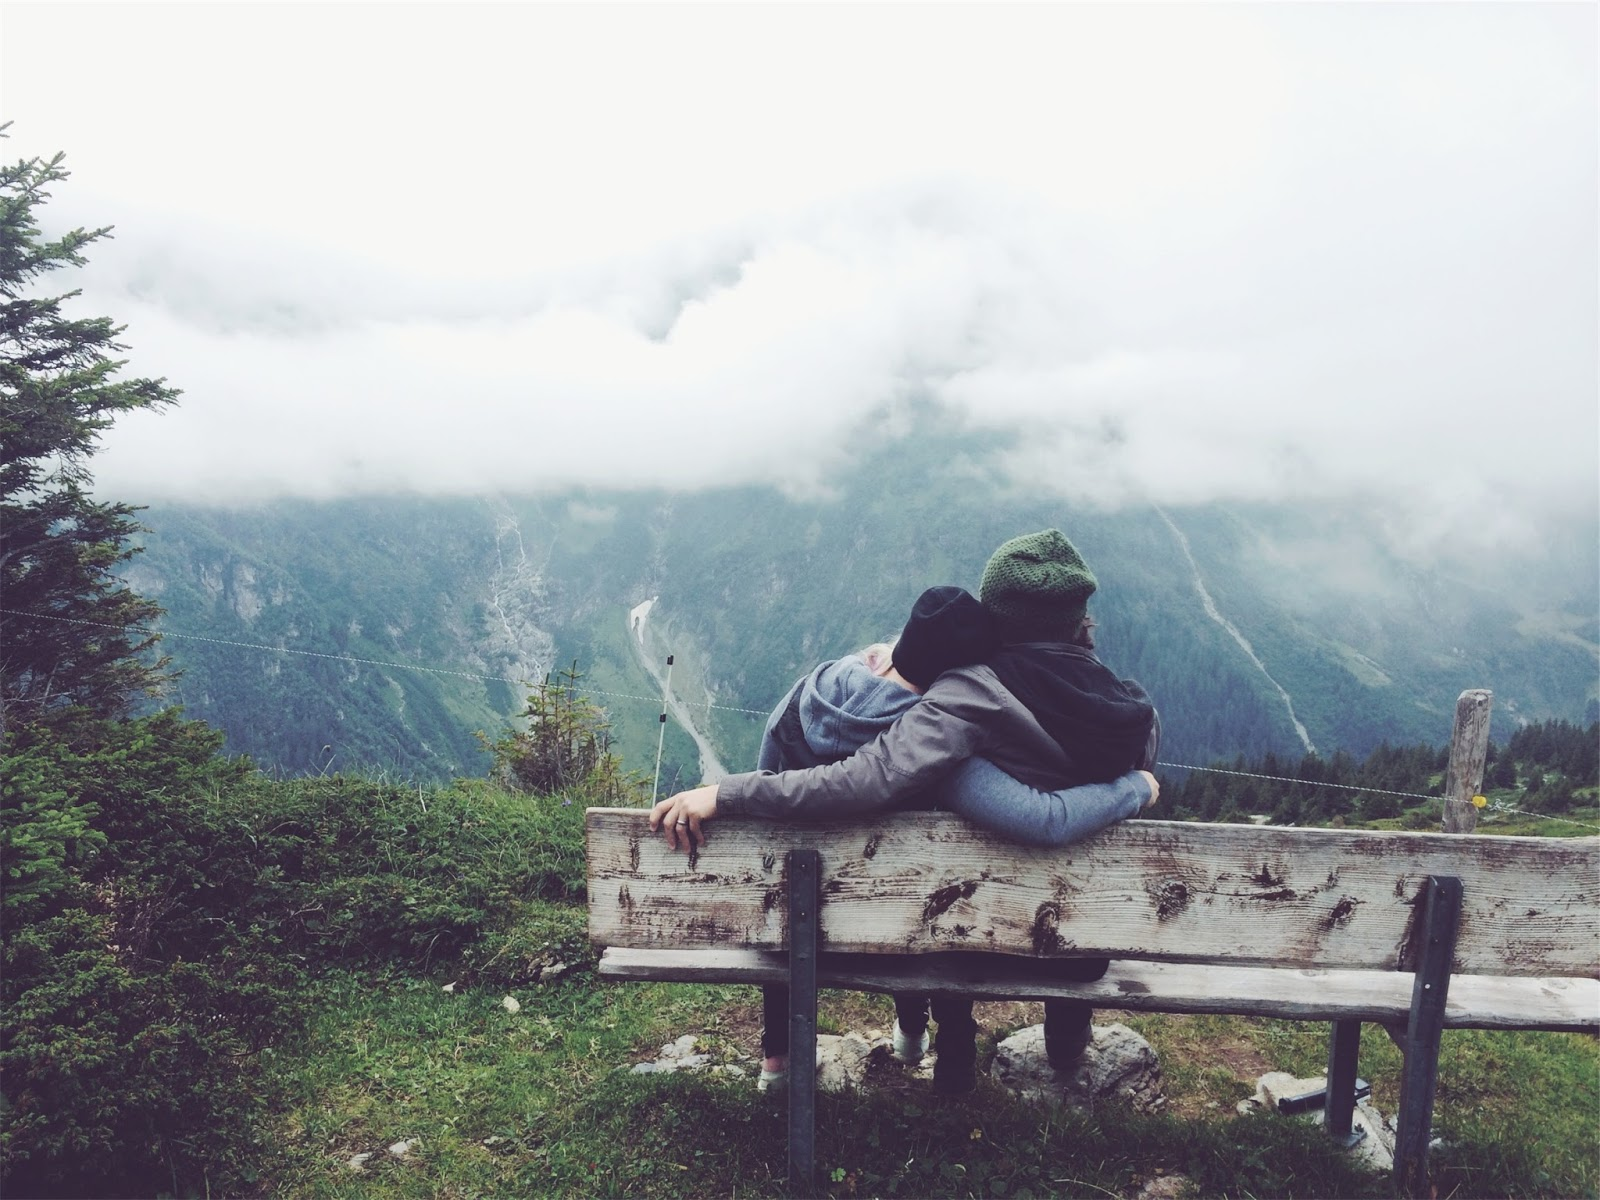 couple, love, romance, romantic, guy, girl, people, cuddling, bench, nature, outdoors, fog, clouds